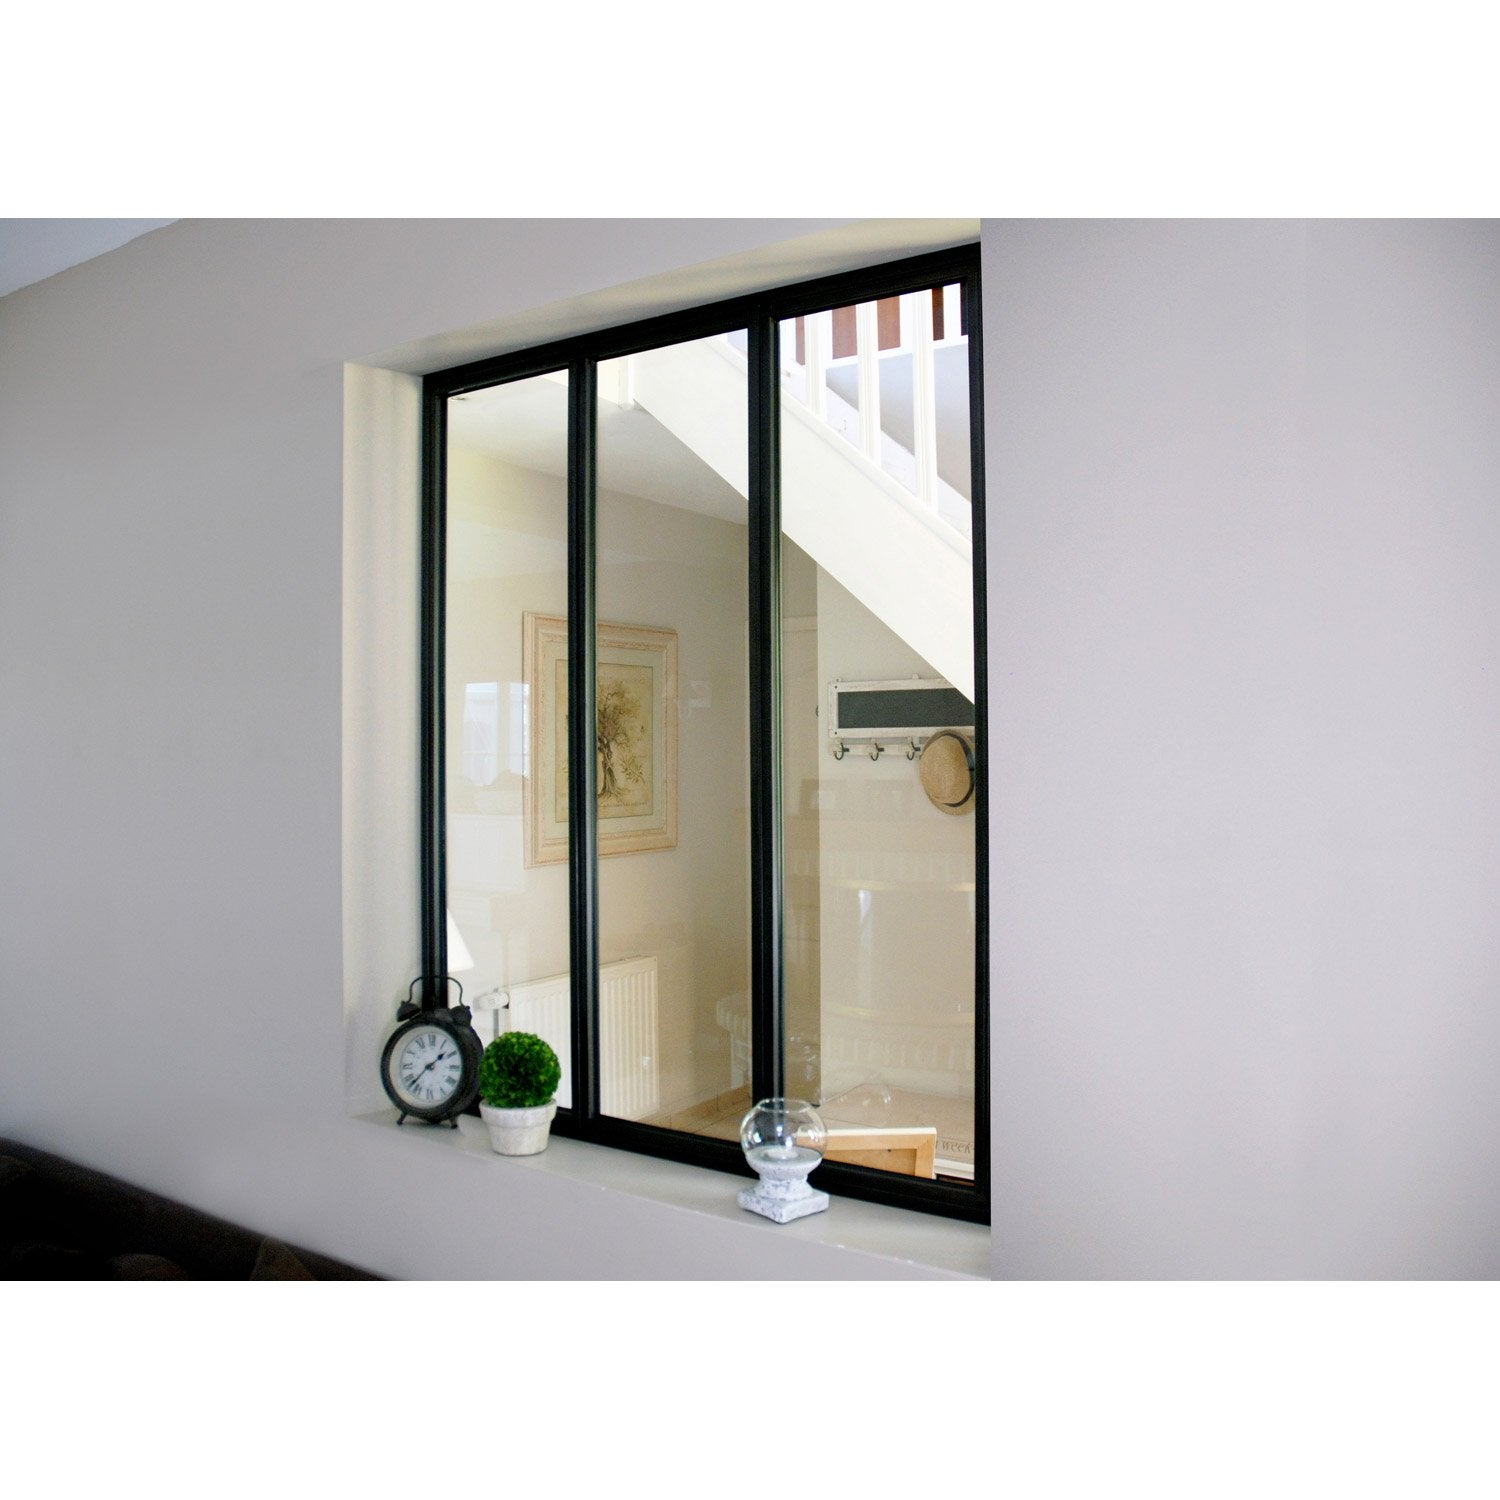 Verri re d 39 int rieur atelier en kit aluminium noir 3 for Verriere atelier interieur